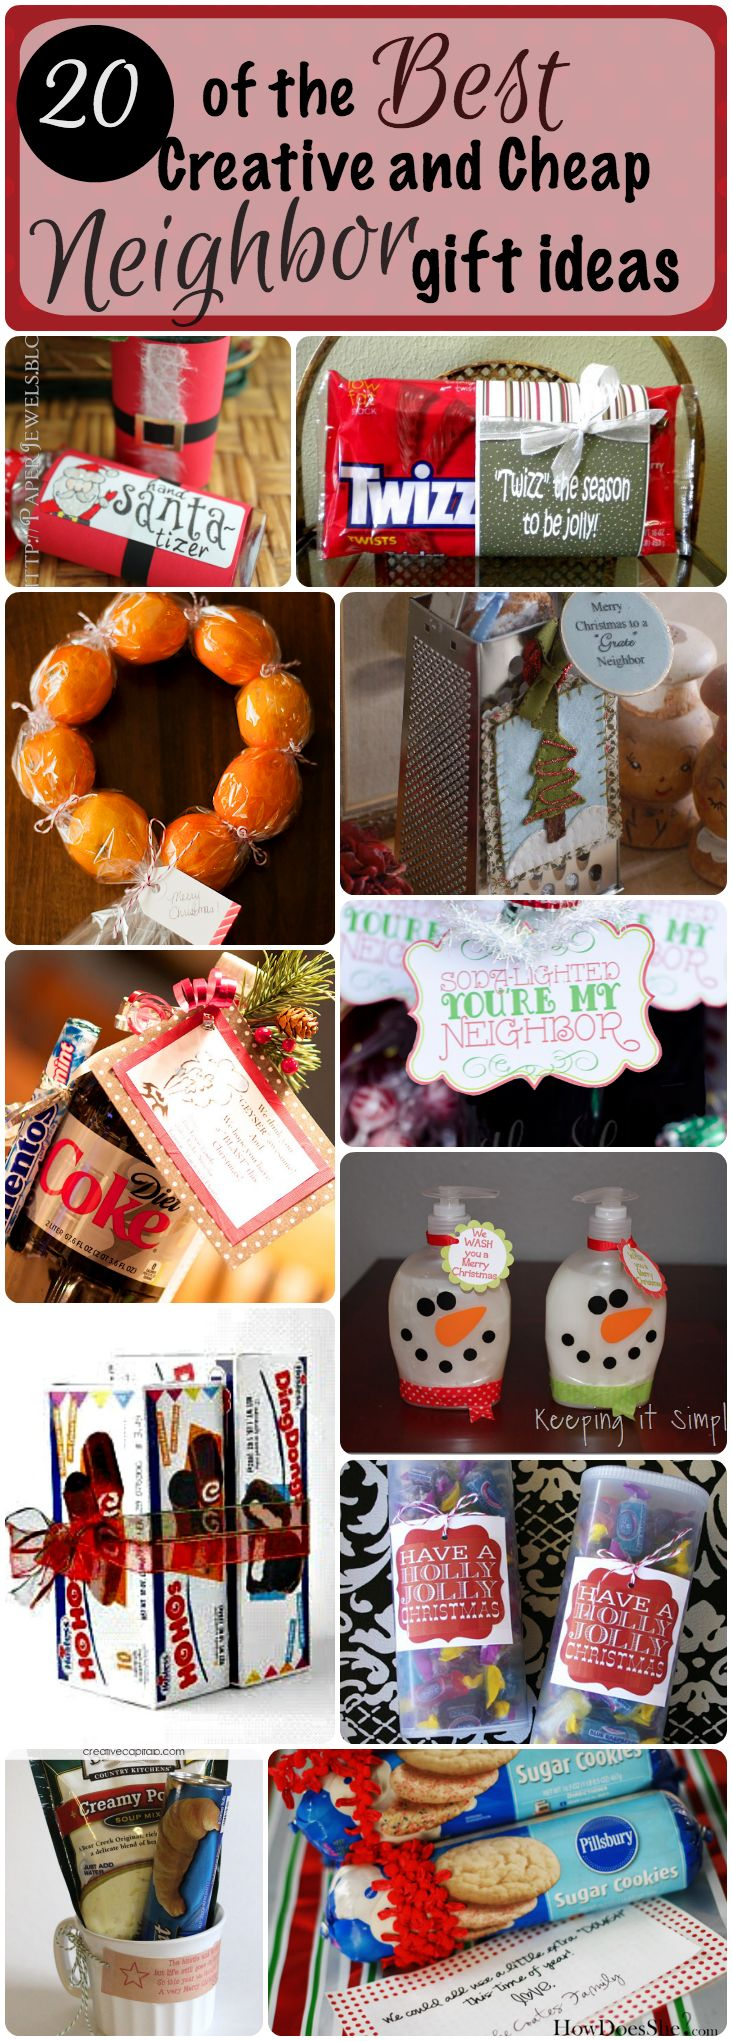 20 Best Creative And Cheap Neighbor Gifts For Christmas | Thrifty ...